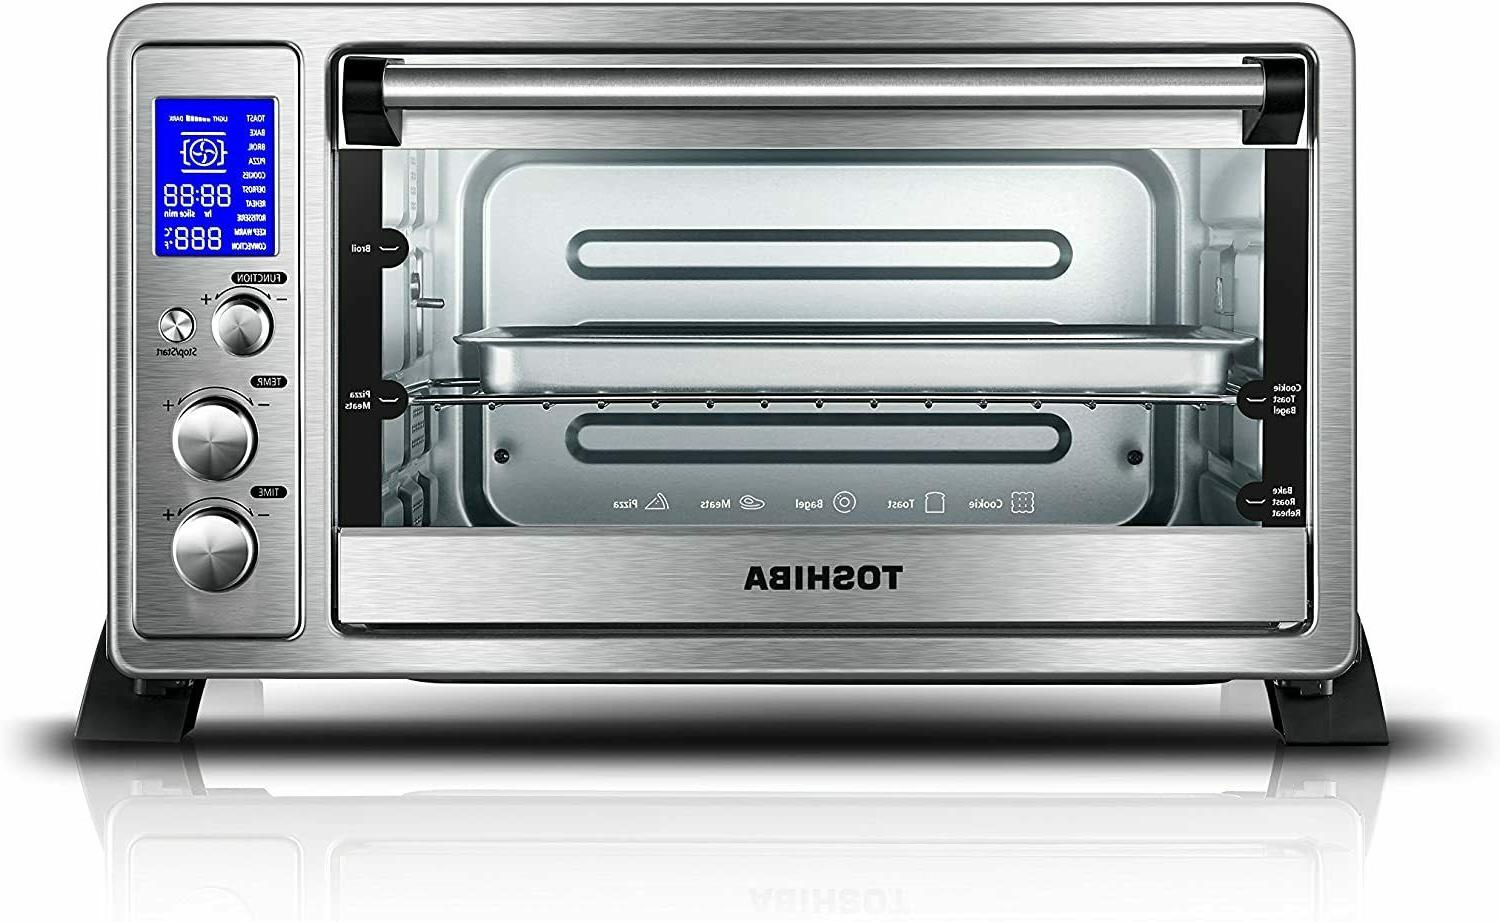 ac25cew ss digital toaster oven with convection